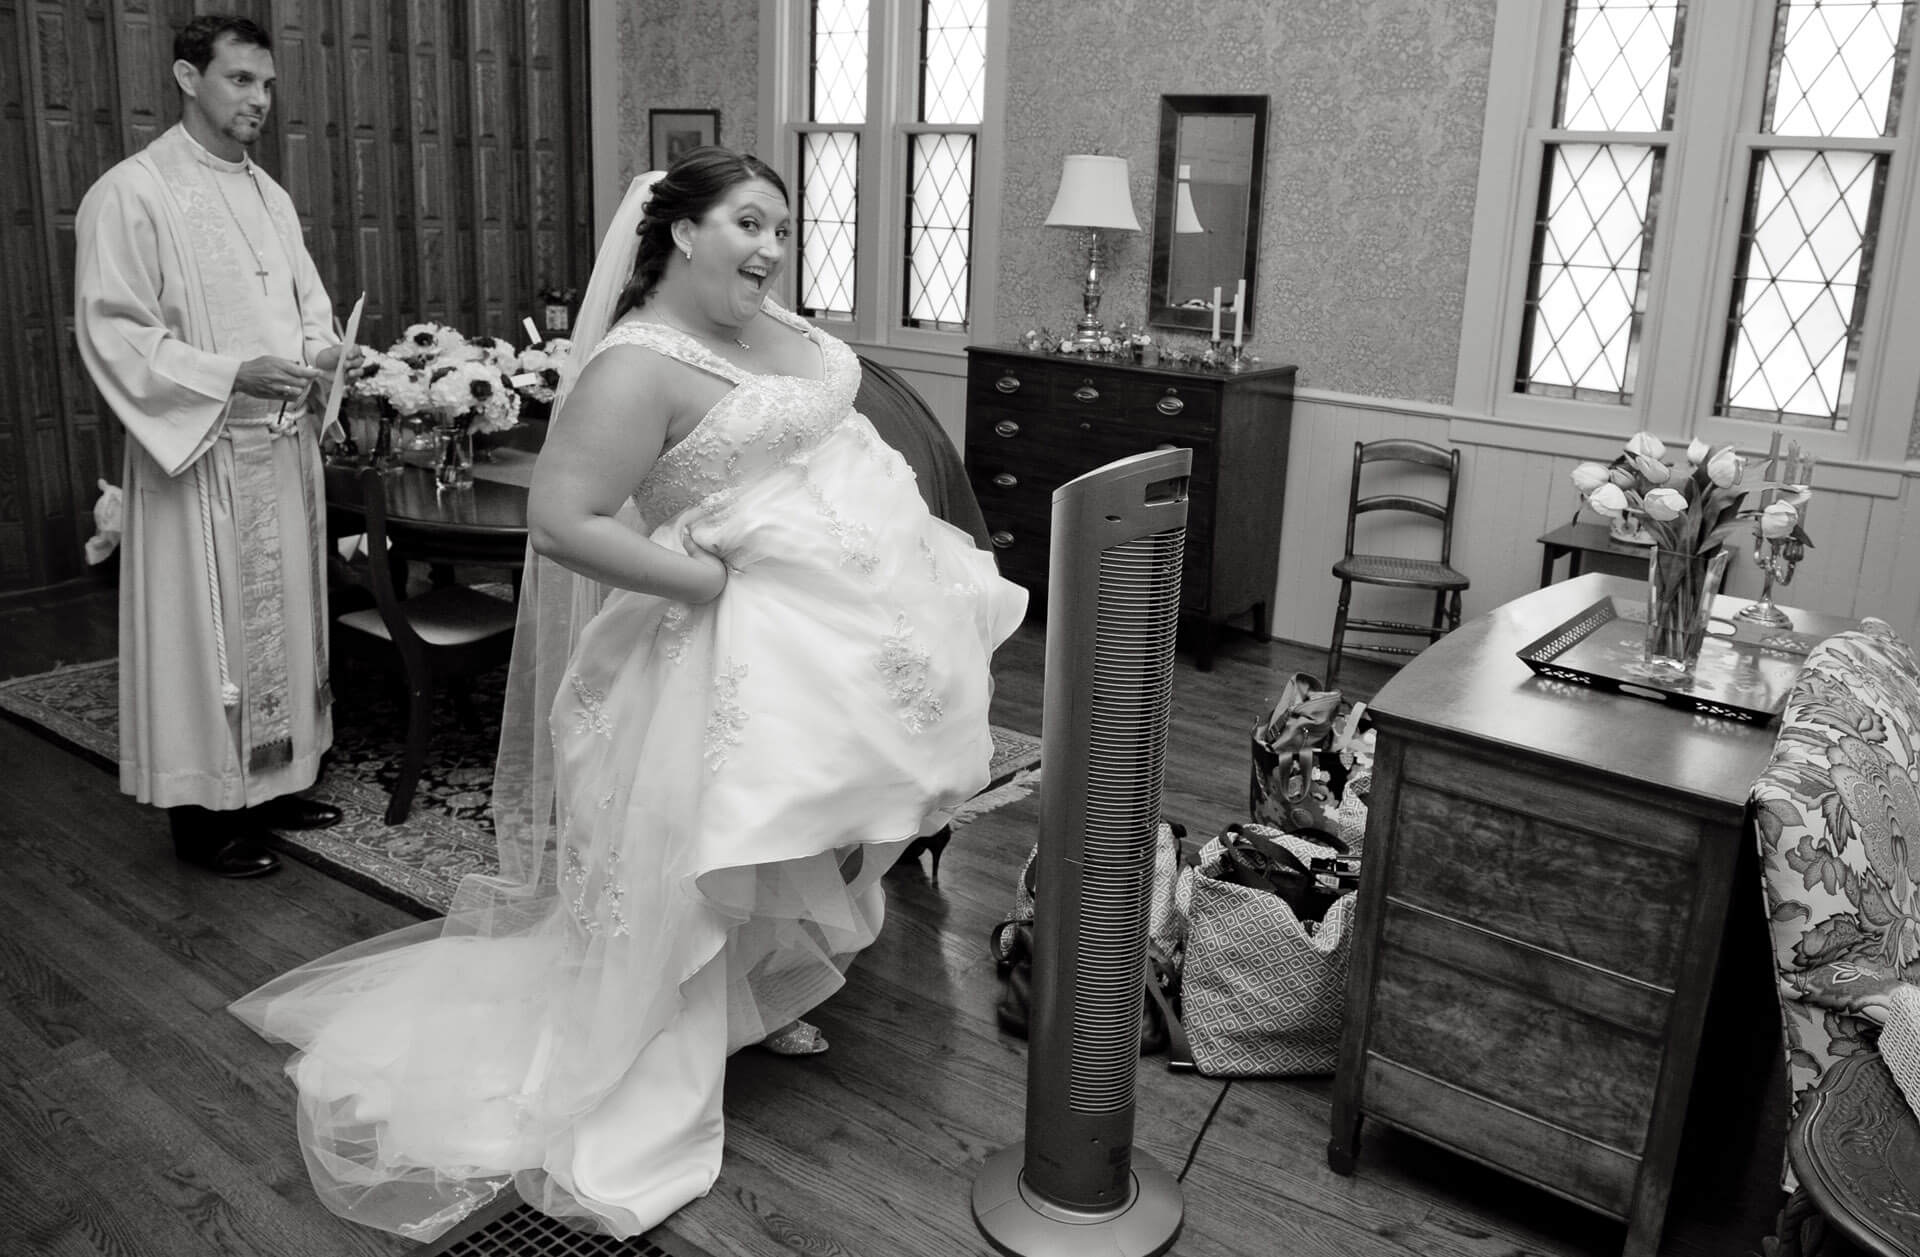 Bride hikes up her dress in Metro Detroit, Michigan to cool off just as the priest walks into the room.